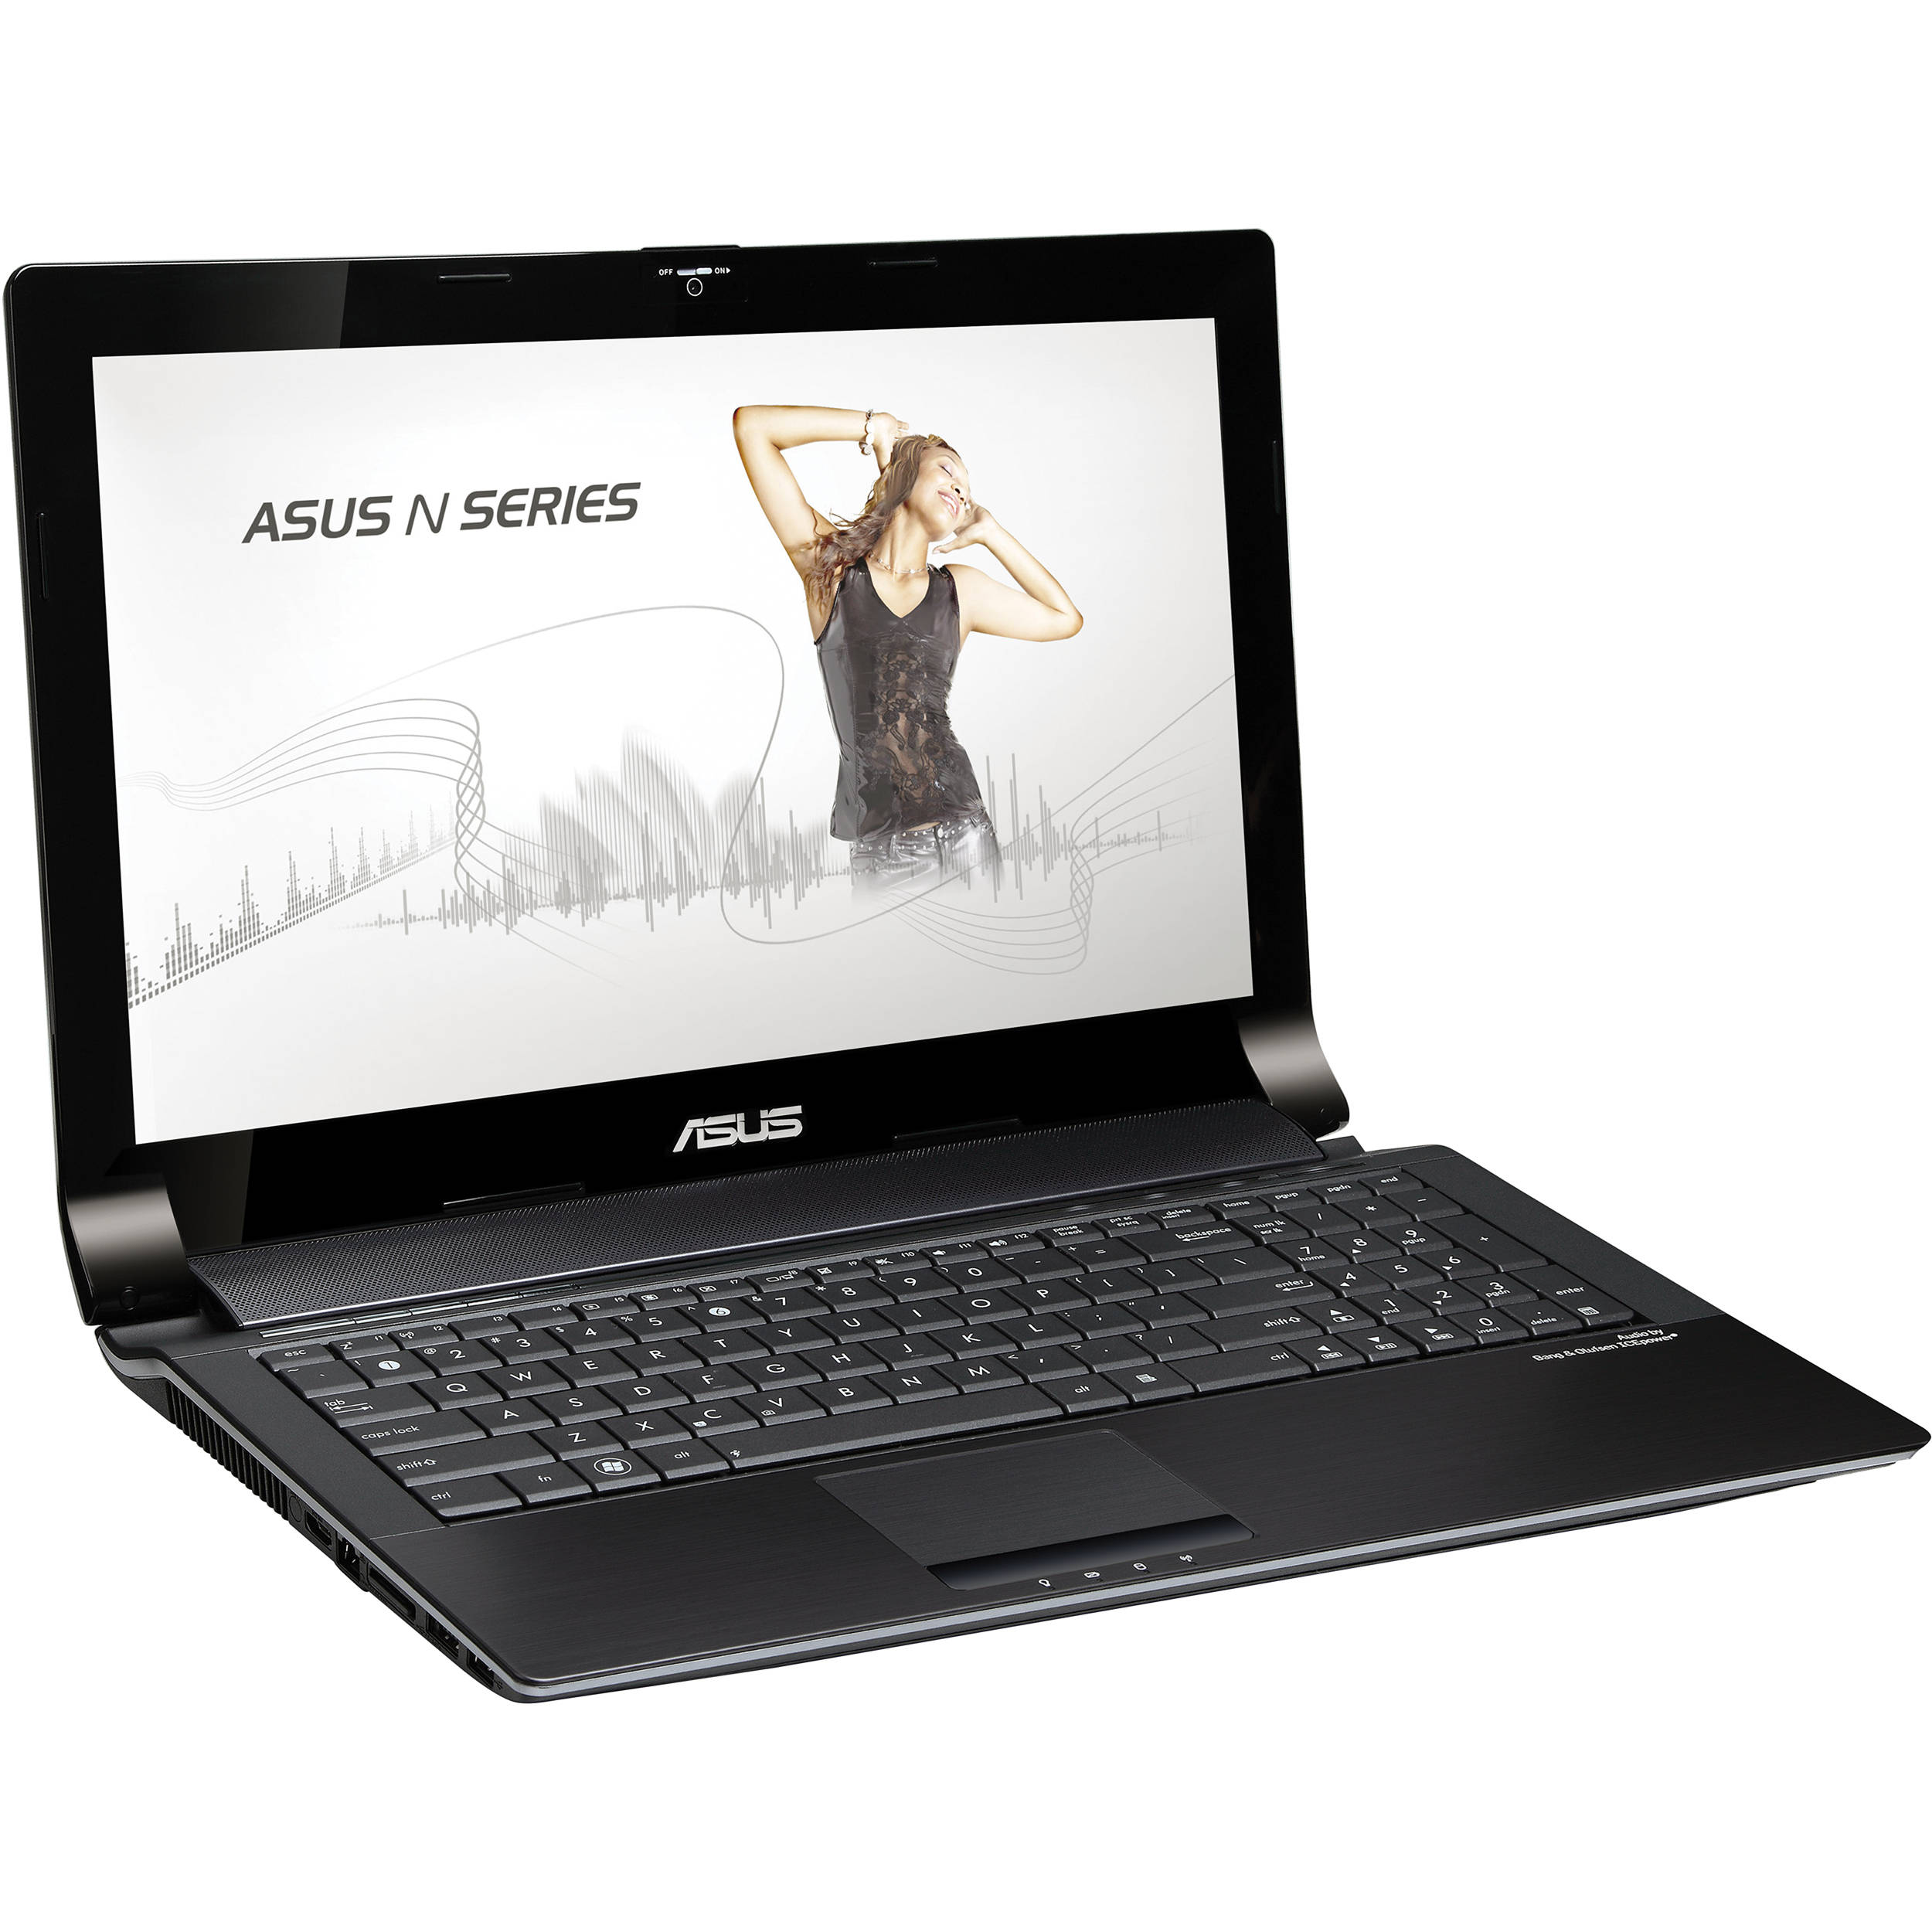 ASUS N53SV INTEL 1000 WLAN TREIBER WINDOWS 8